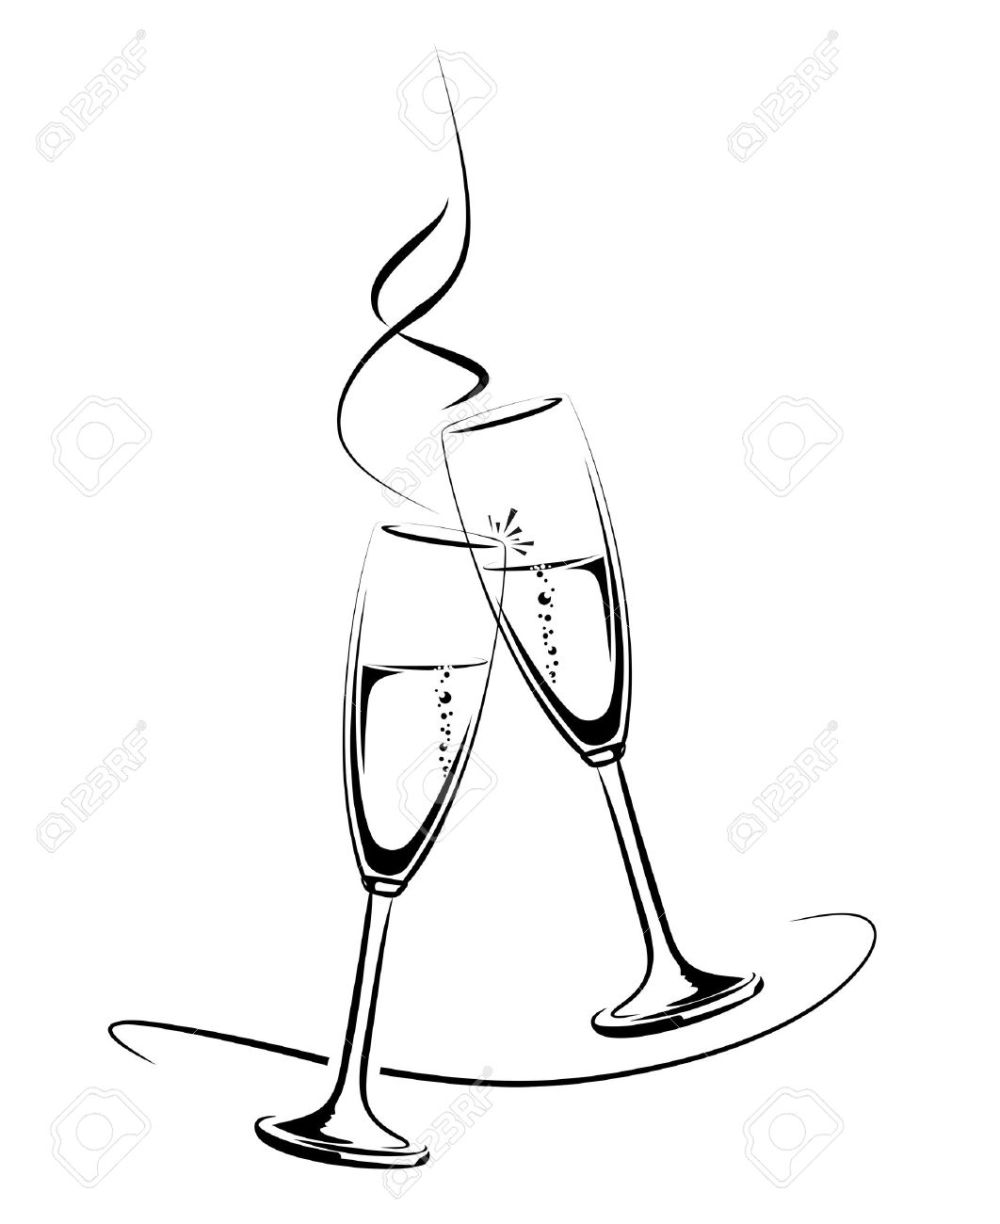 medium resolution of illustration of clinking champagne glasses for a festive occasion illustration